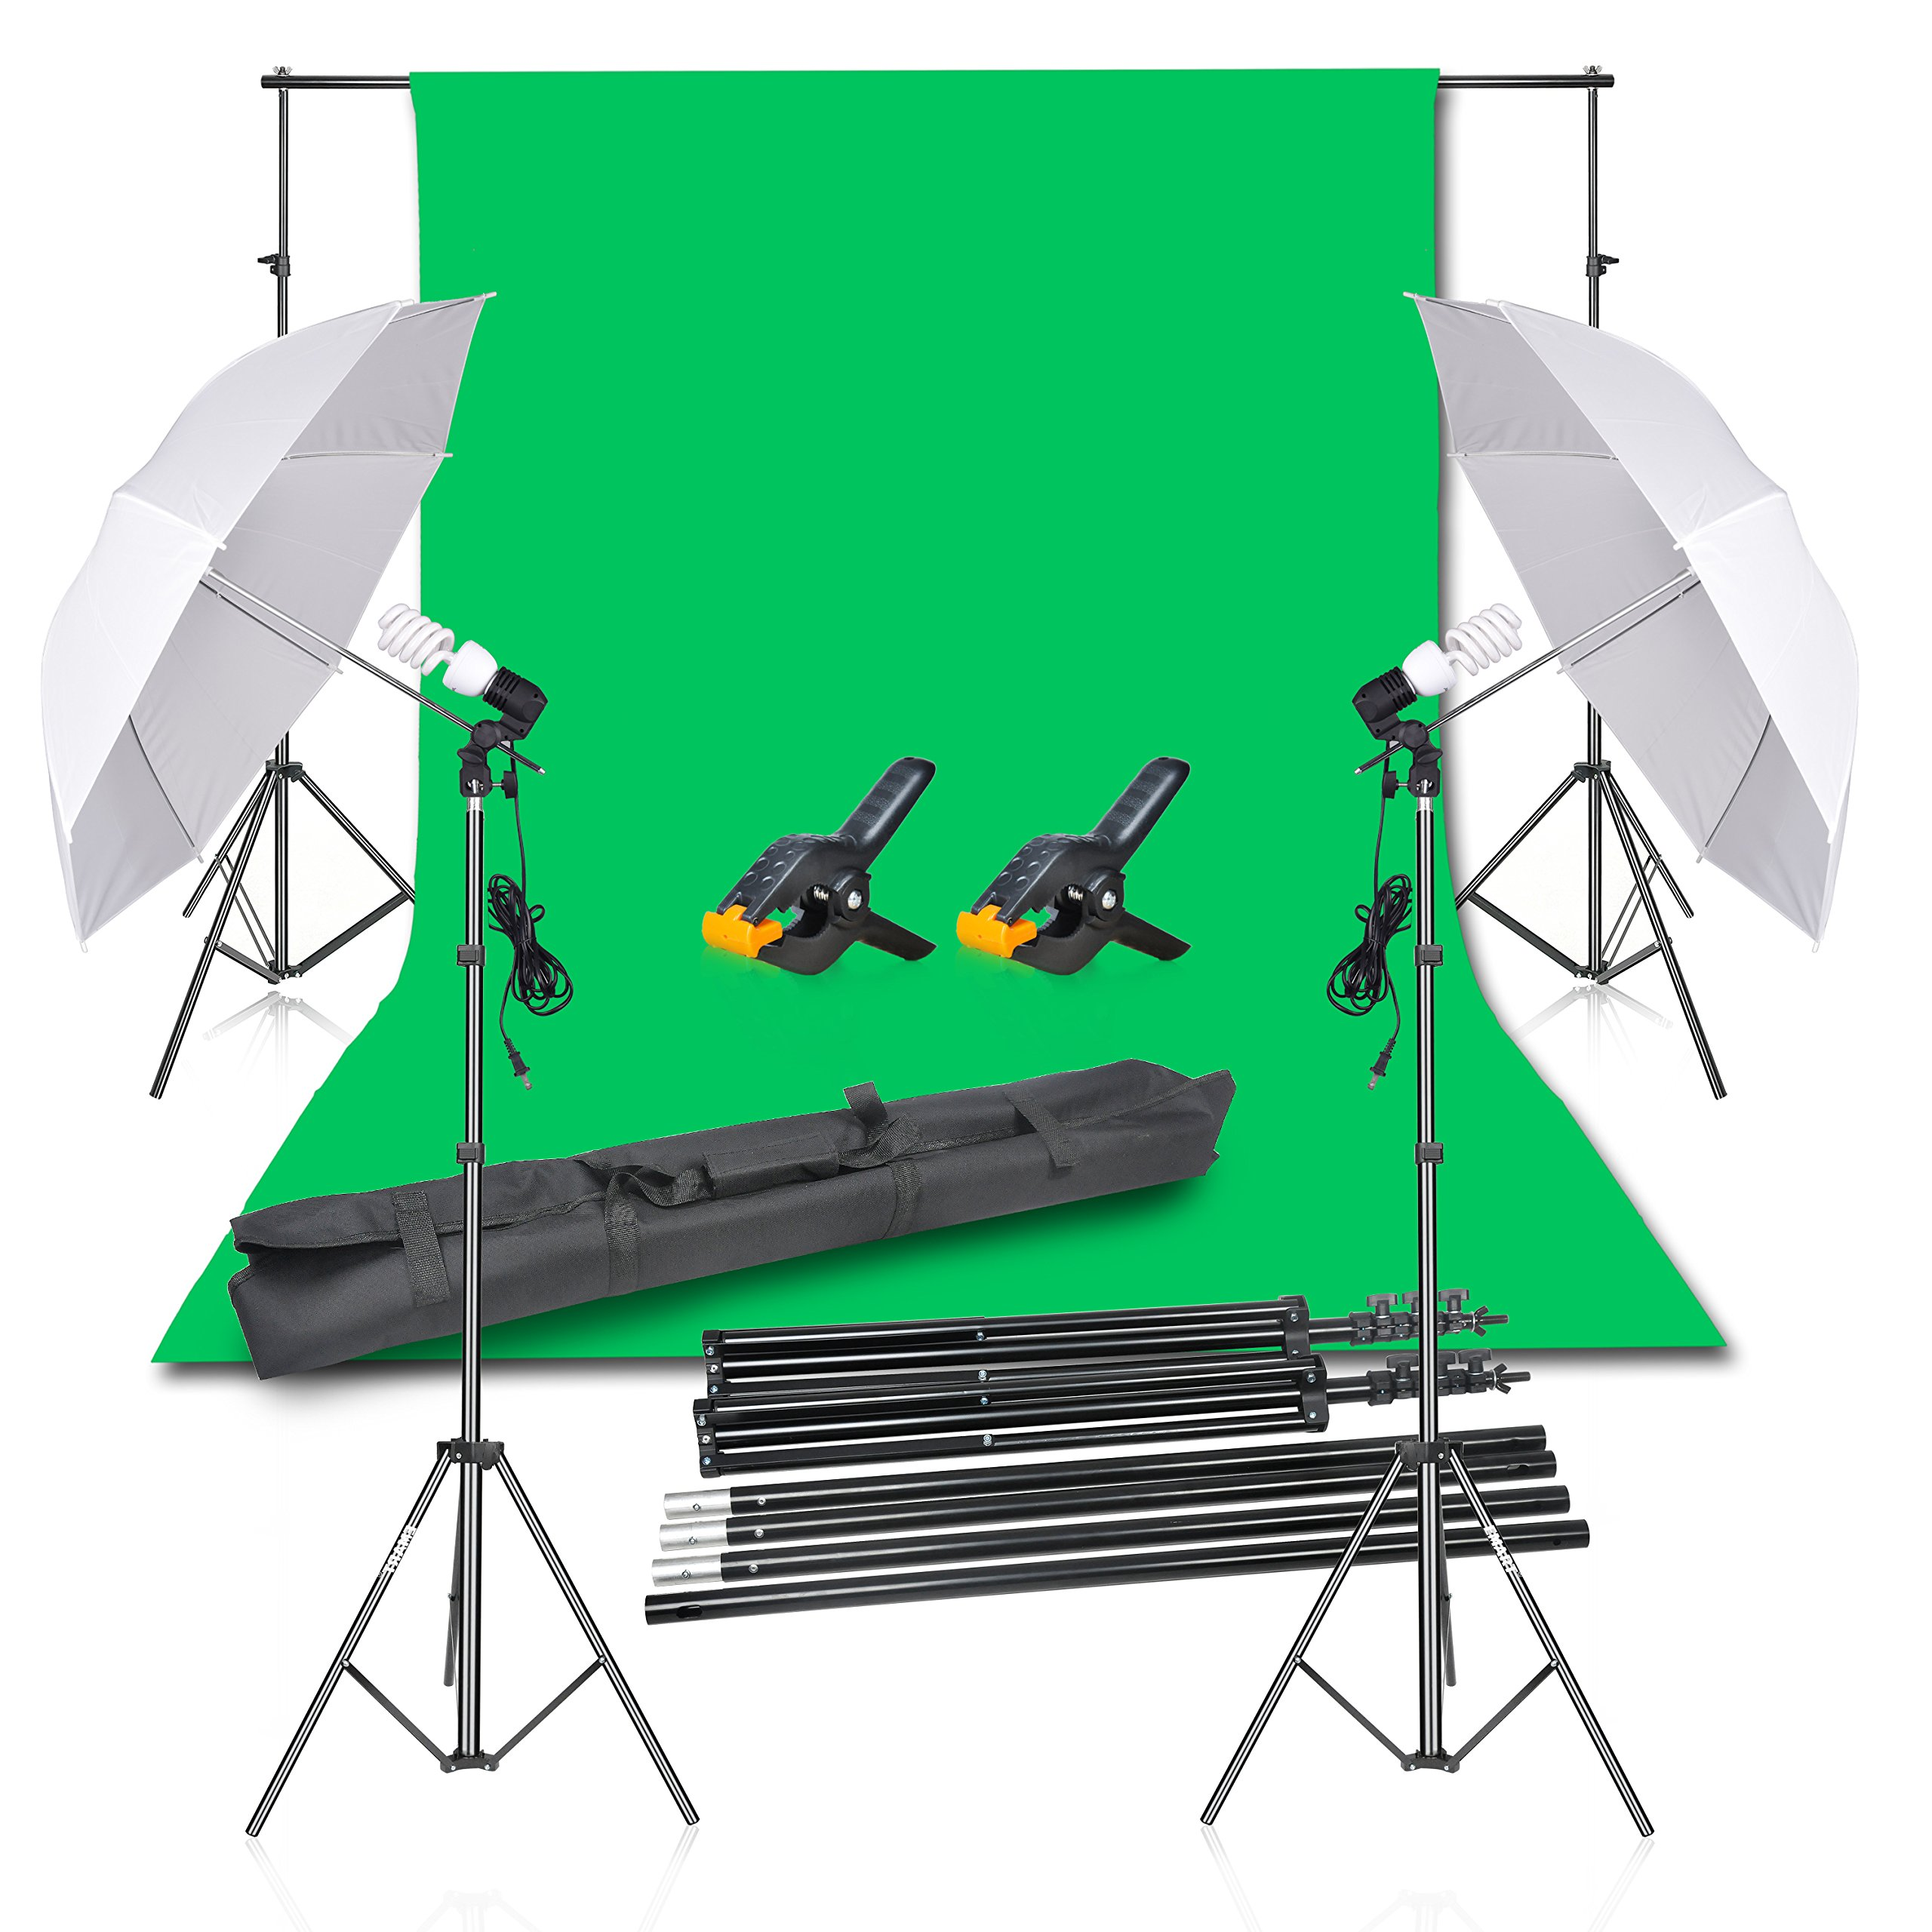 Emart Photography Backdrop Continuous Umbrella Studio Lighting Kit, Muslin Chromakey Green Screen and Background Stand Support System for Photo Video Shoot by EMART